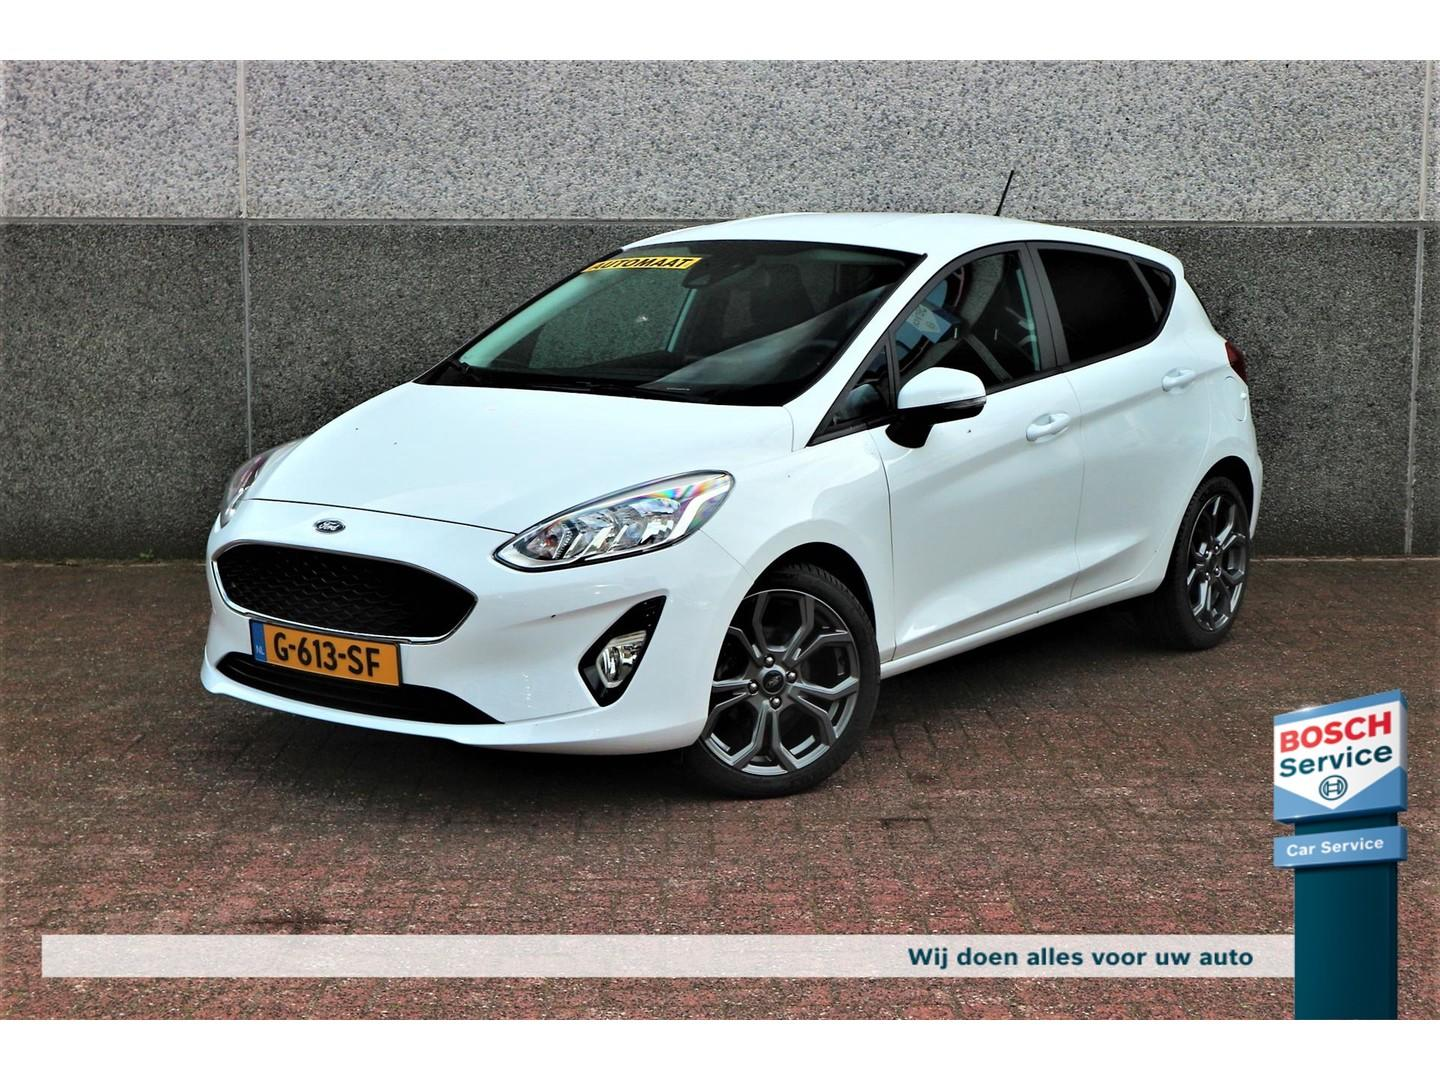 Ford Fiesta Ecoboost 100pk automaat 5drs